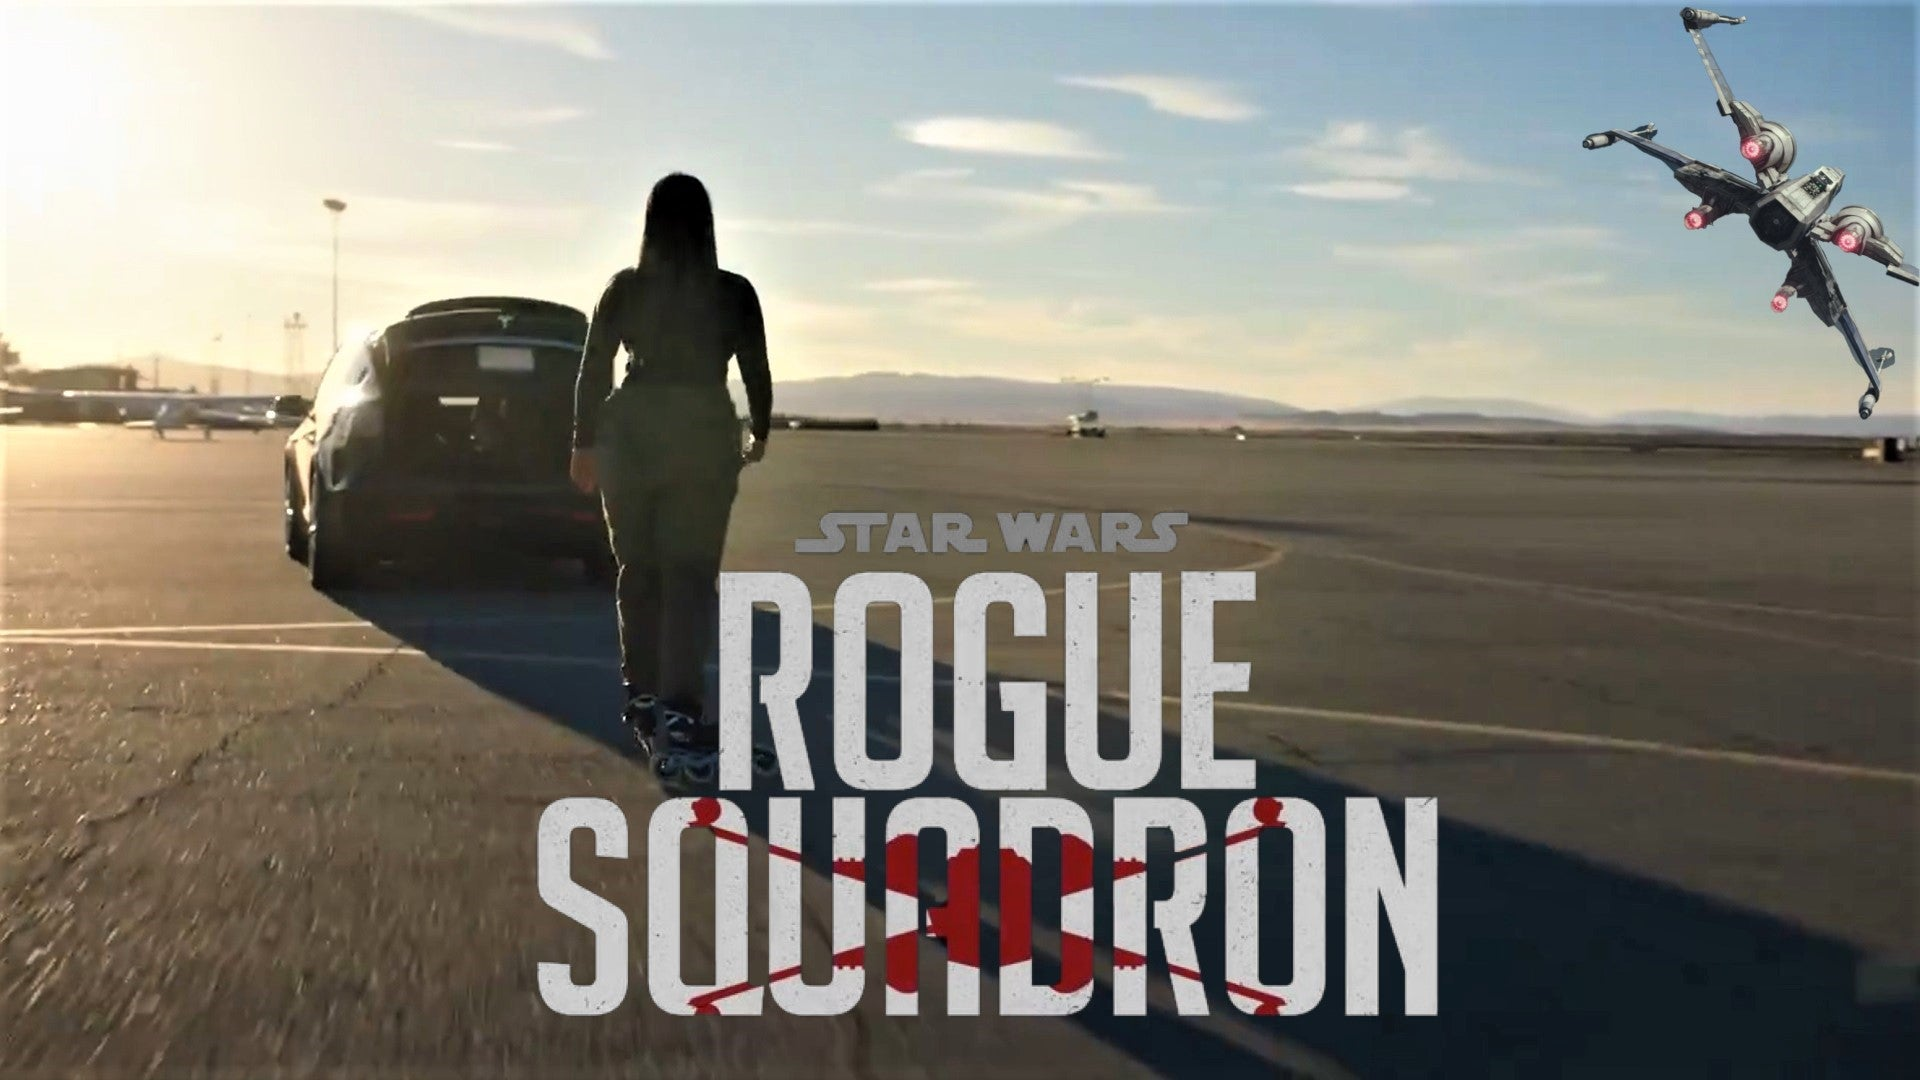 Tesla Model X Featured in New Star Wars Rogue Squadron Teaser